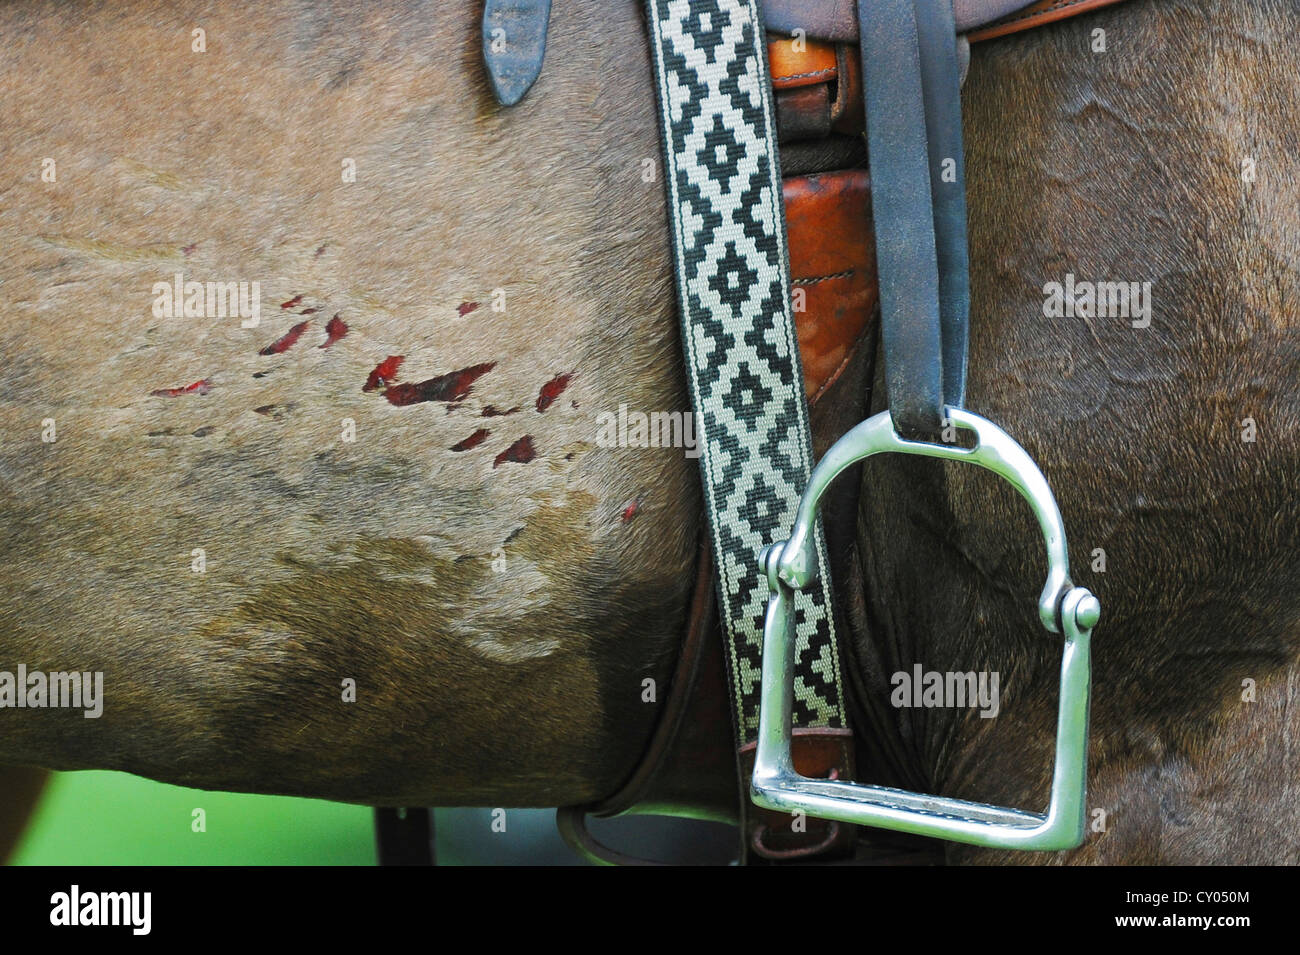 A polo pony's injuries caused by spurs, Ebreichsdorf, Lower Austria, Austria, Europe - Stock Image